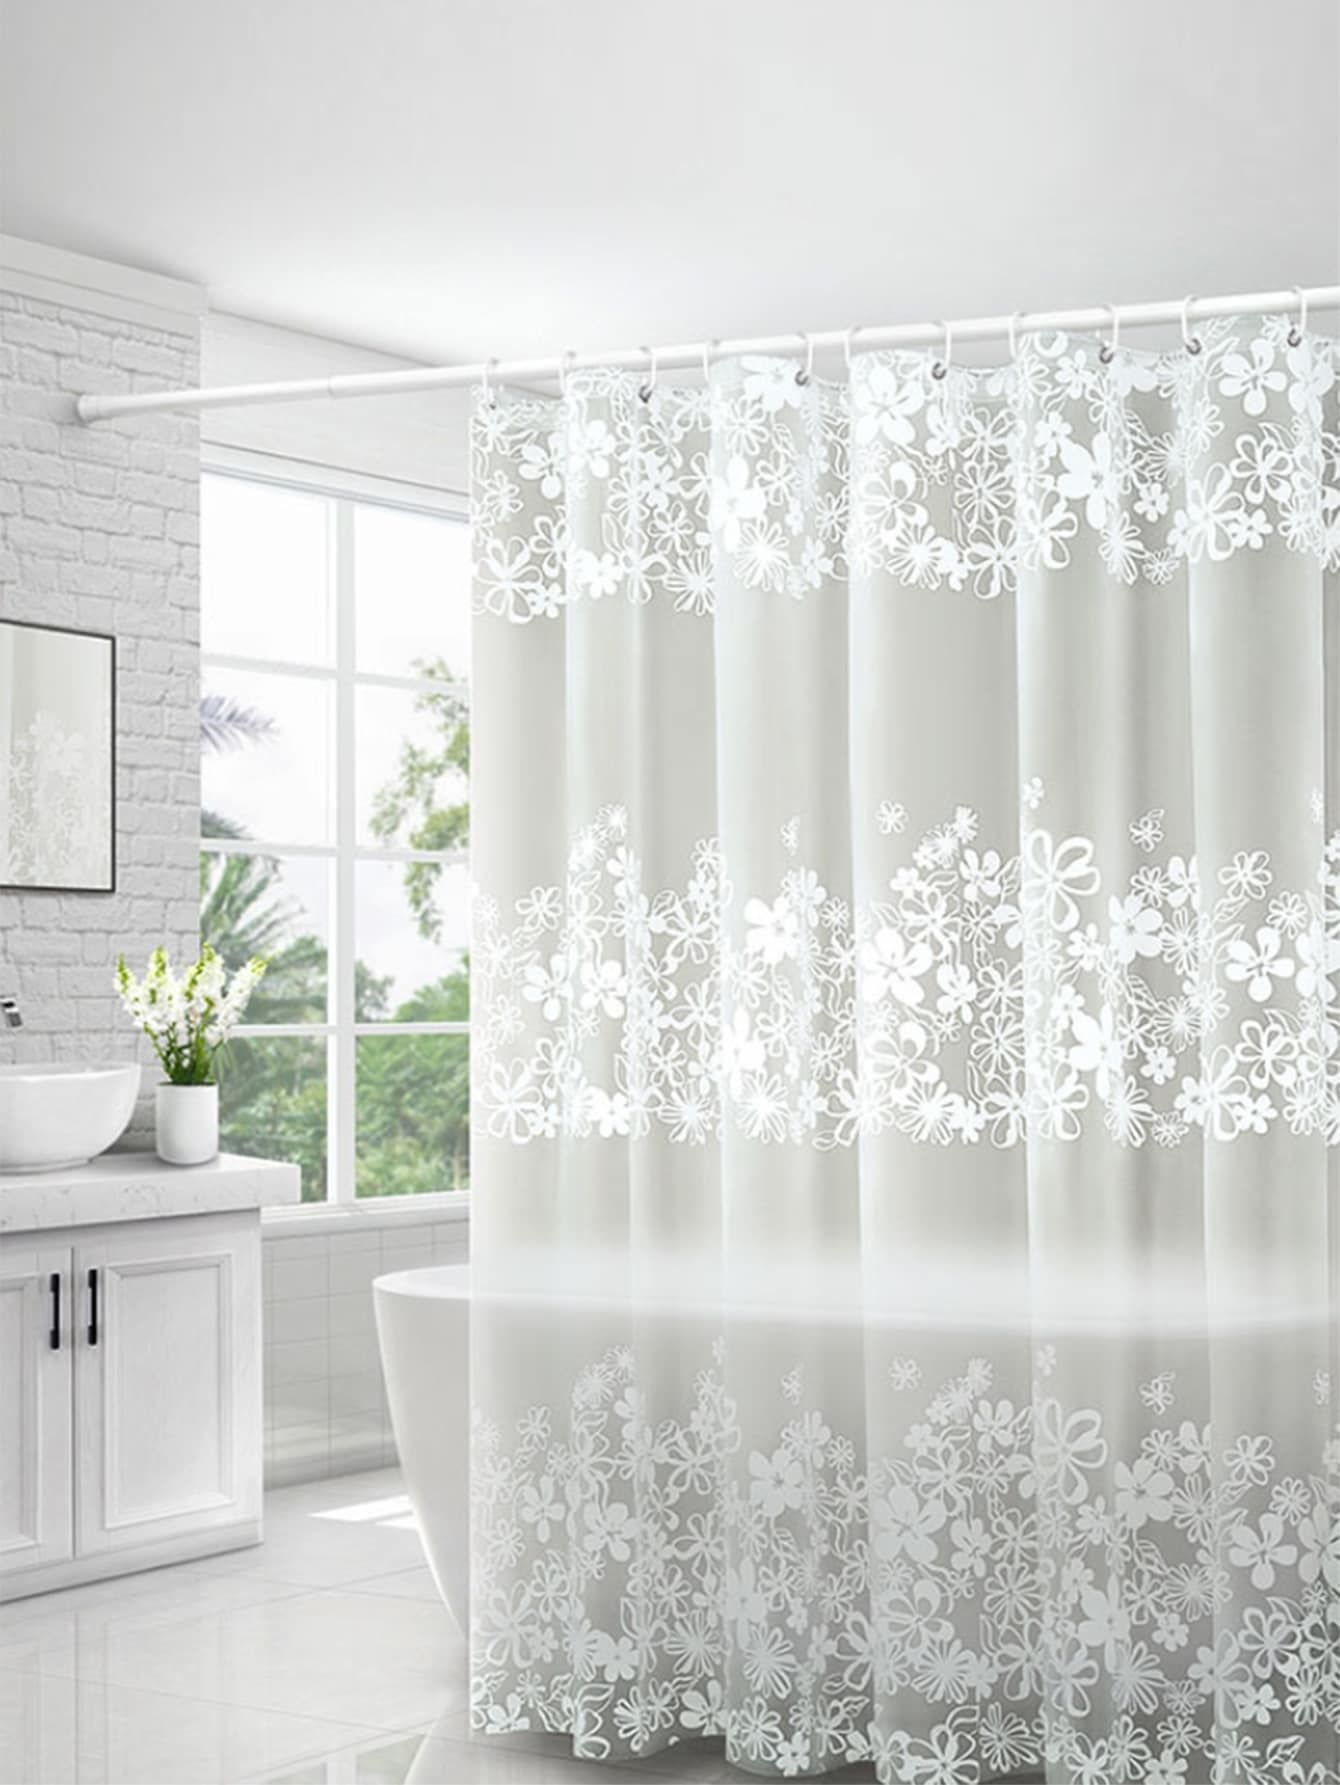 Flower Print Water Proof Shower Curtain Sponsored Ad Water